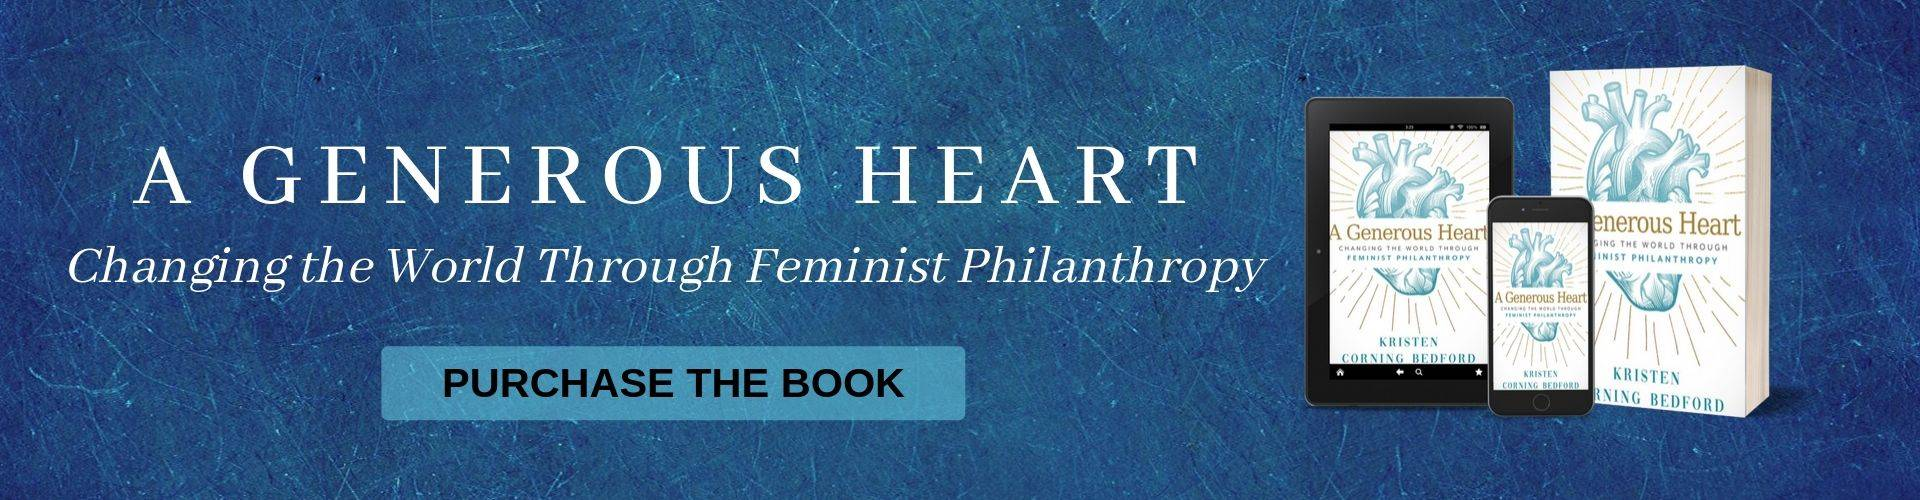 A Generous Heart - Changing the World Through Feminist Philanthropy